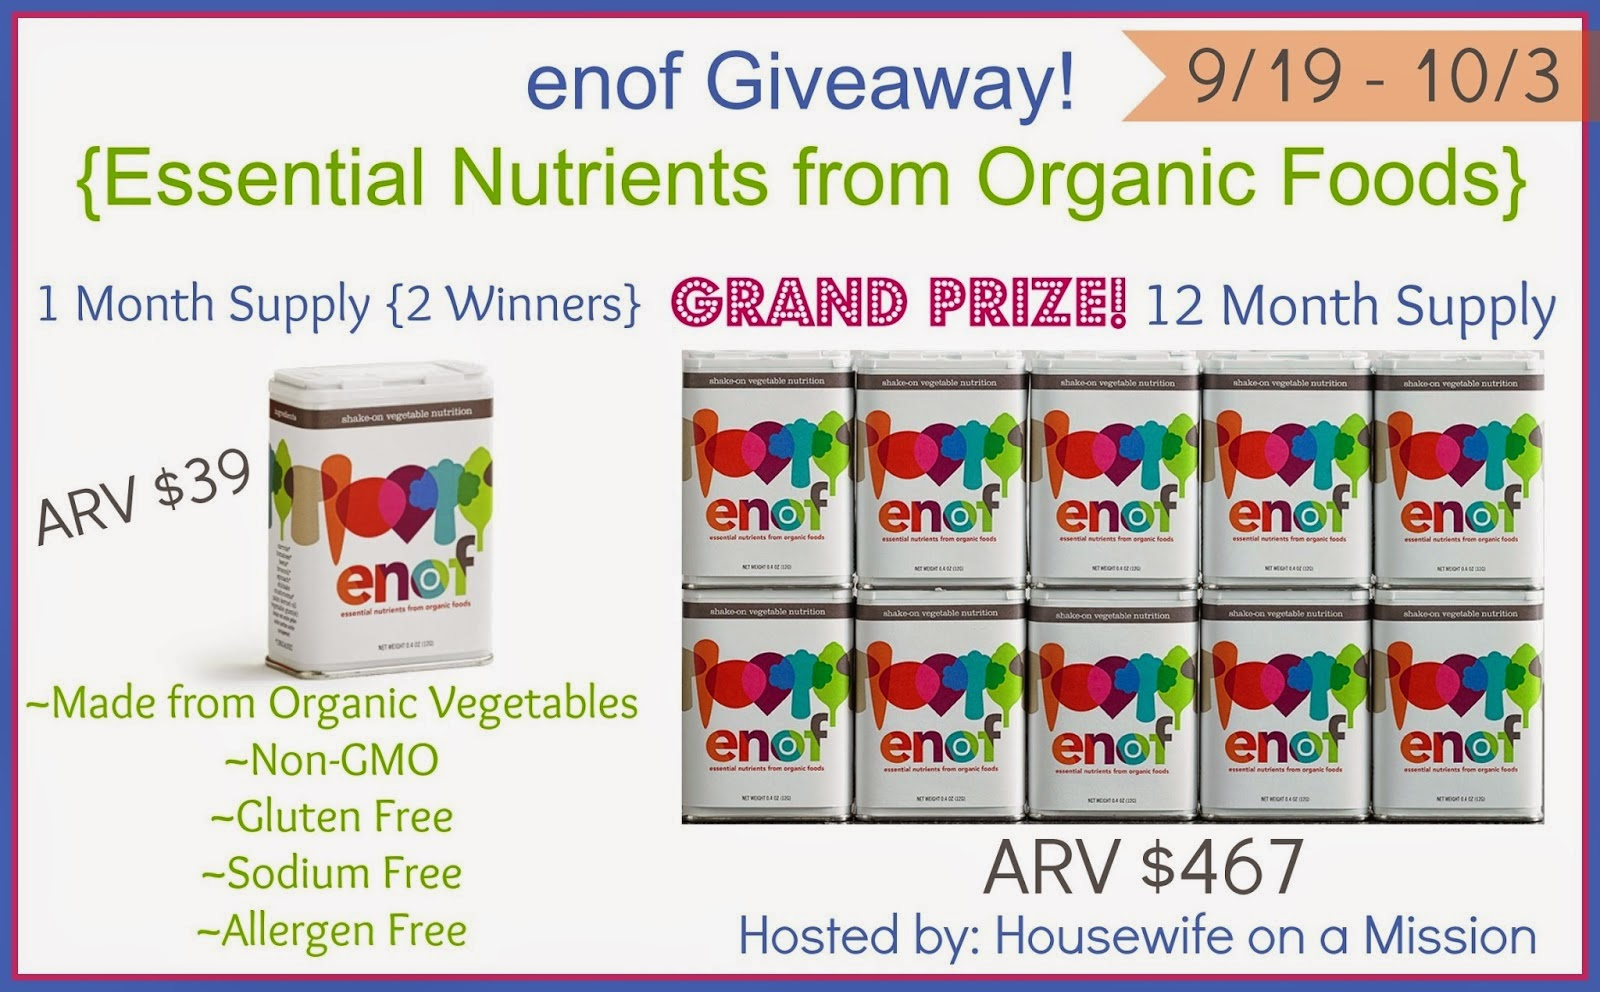 Organic Foods Supply - ENOF Giveaway